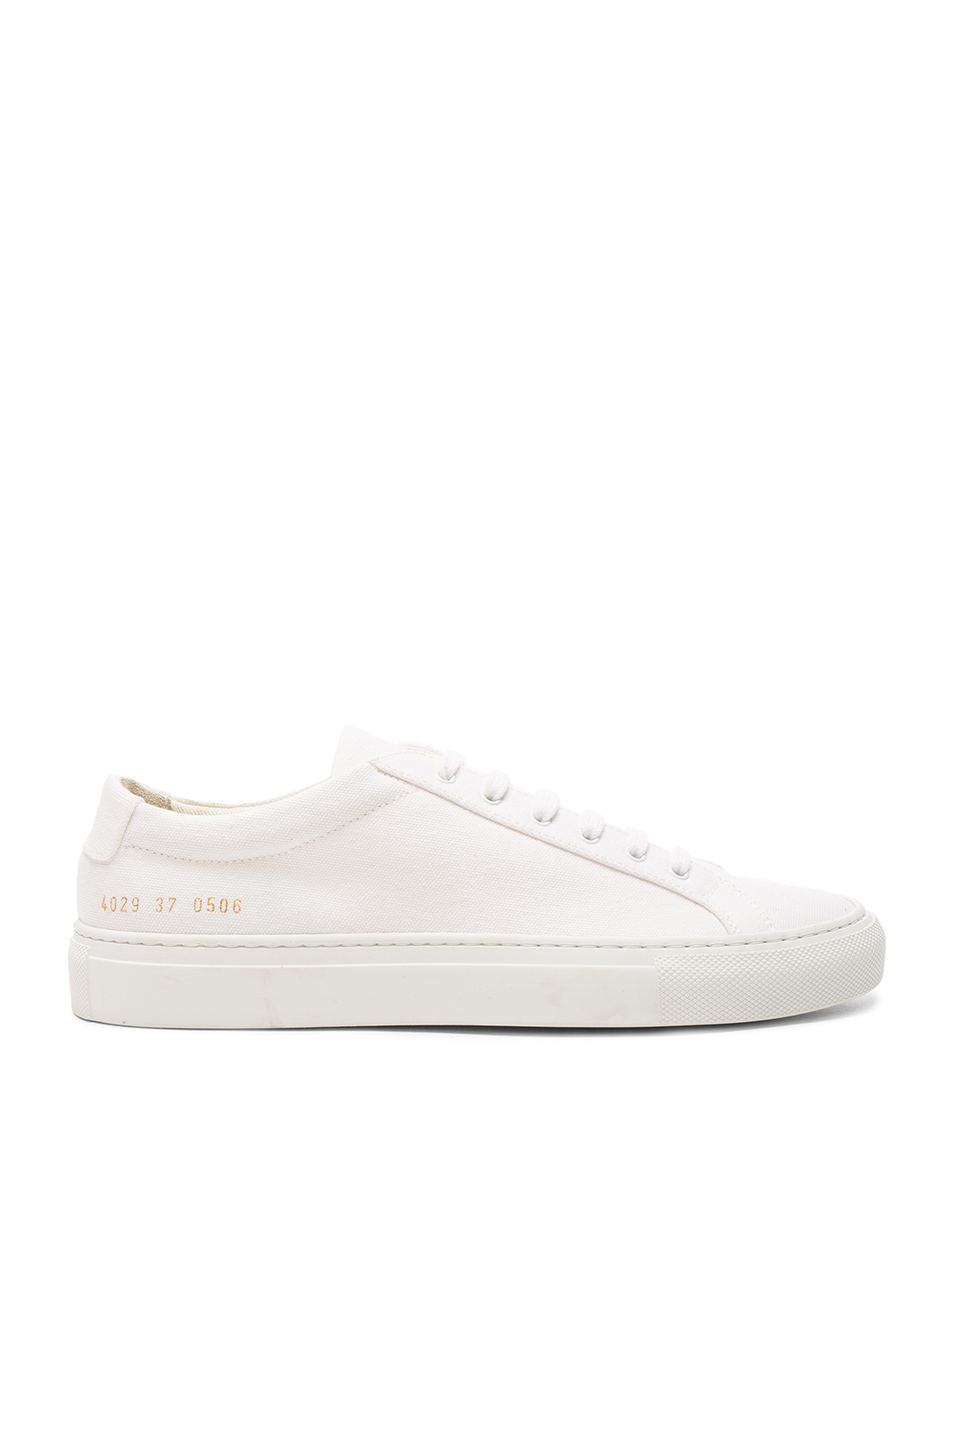 bc3ff25934cf0 Common Projects Achilles Super Leather And Canvas Sneakers In White ...